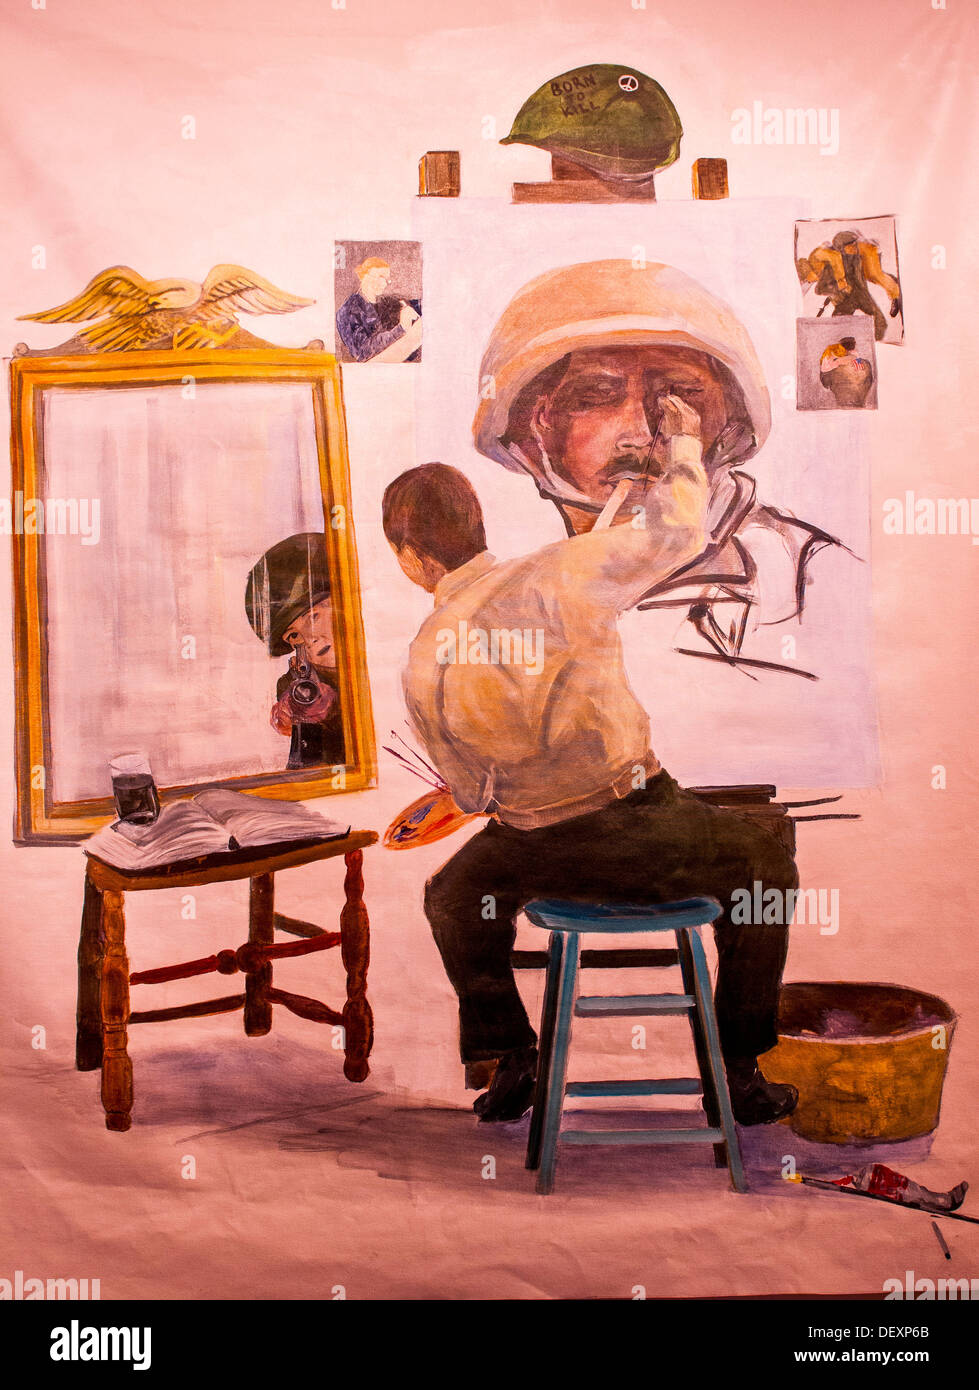 SAN DIEGO, Calif. -- A Veteran paints himself in a painting that echoes one of Norman Rockwell's most famous self-portraits, and - Stock Image